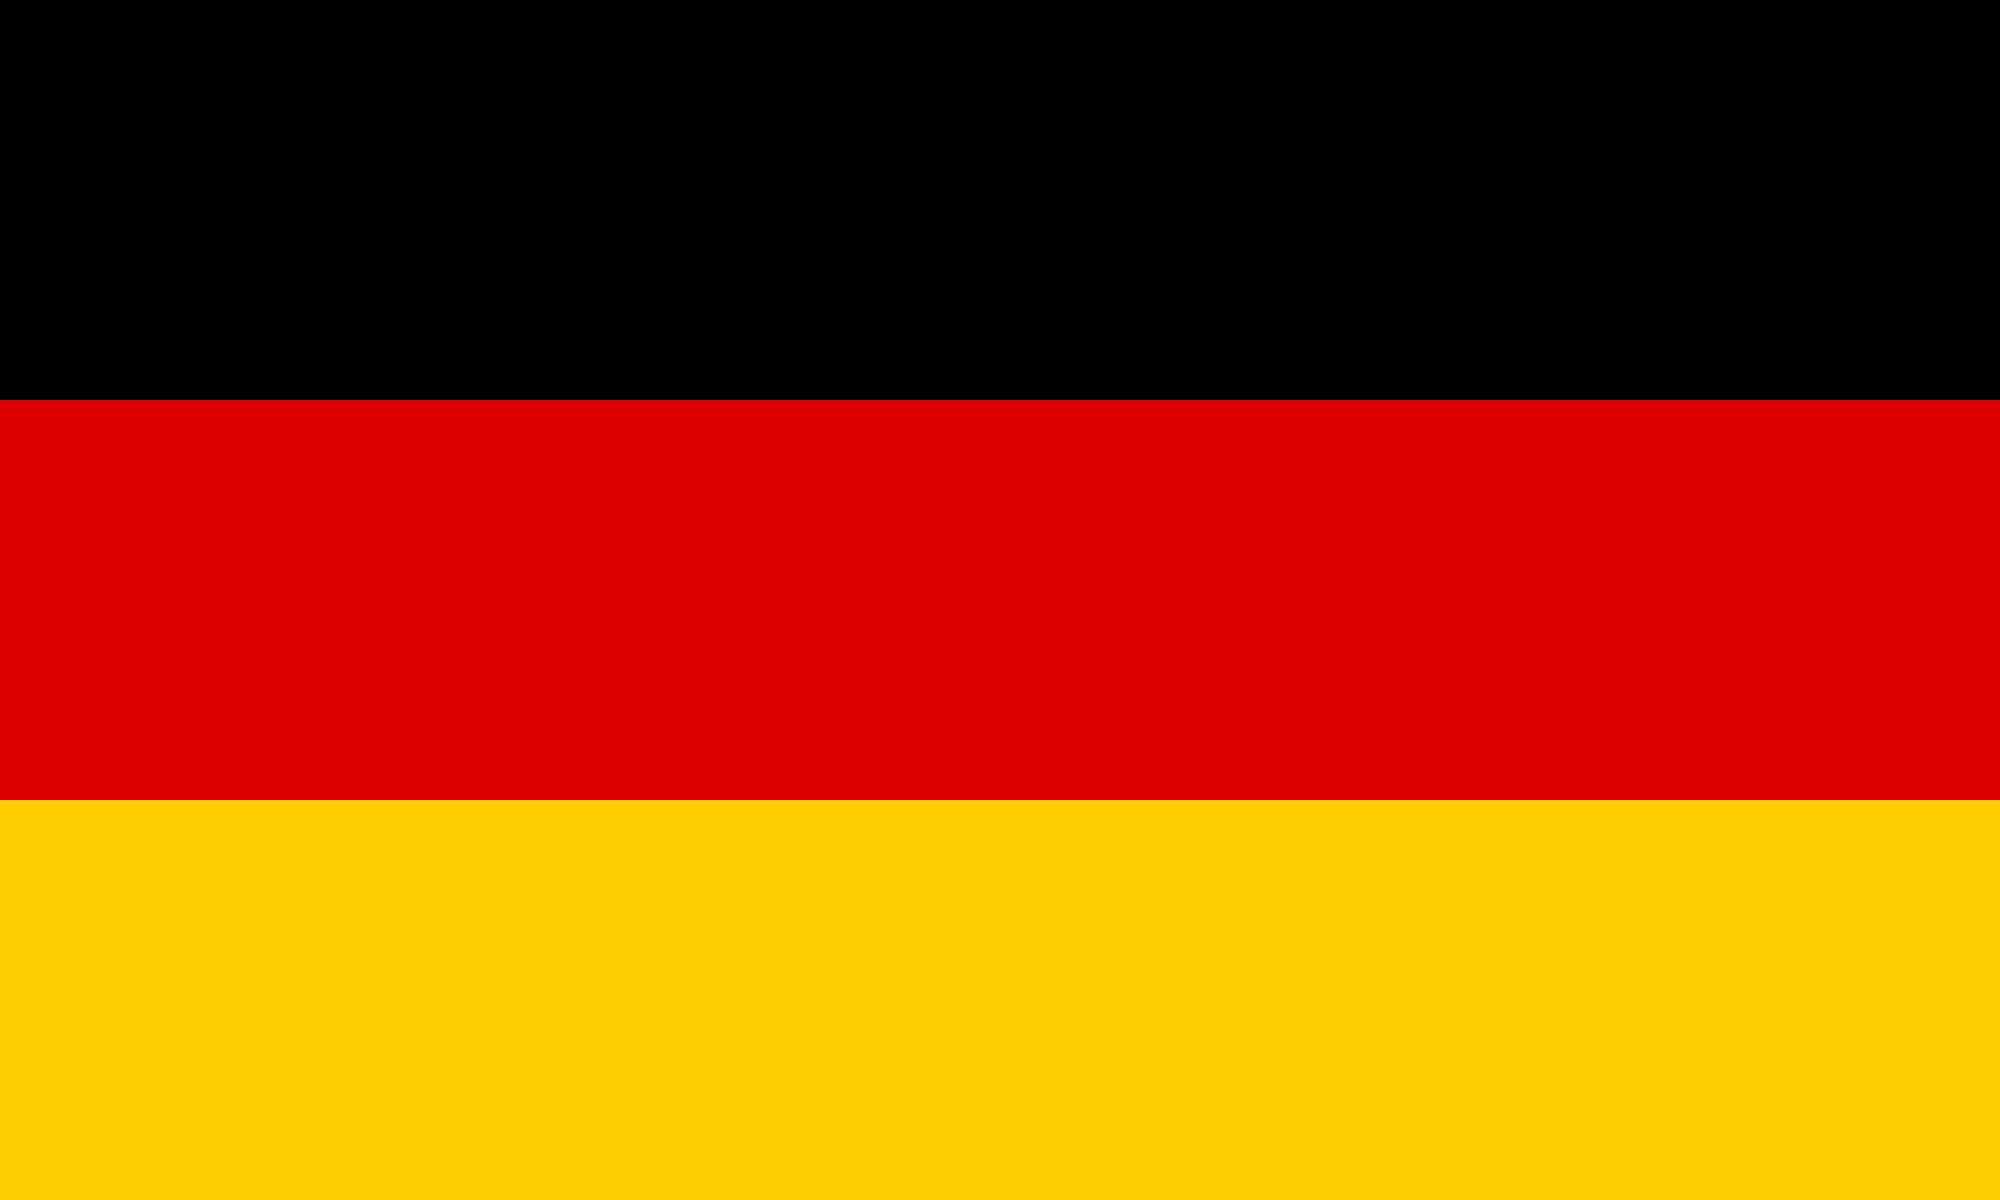 http://images2.wikia.nocookie.net/__cb20110305195912/althistory/es/images/e/ec/Bandera_Alemania.png